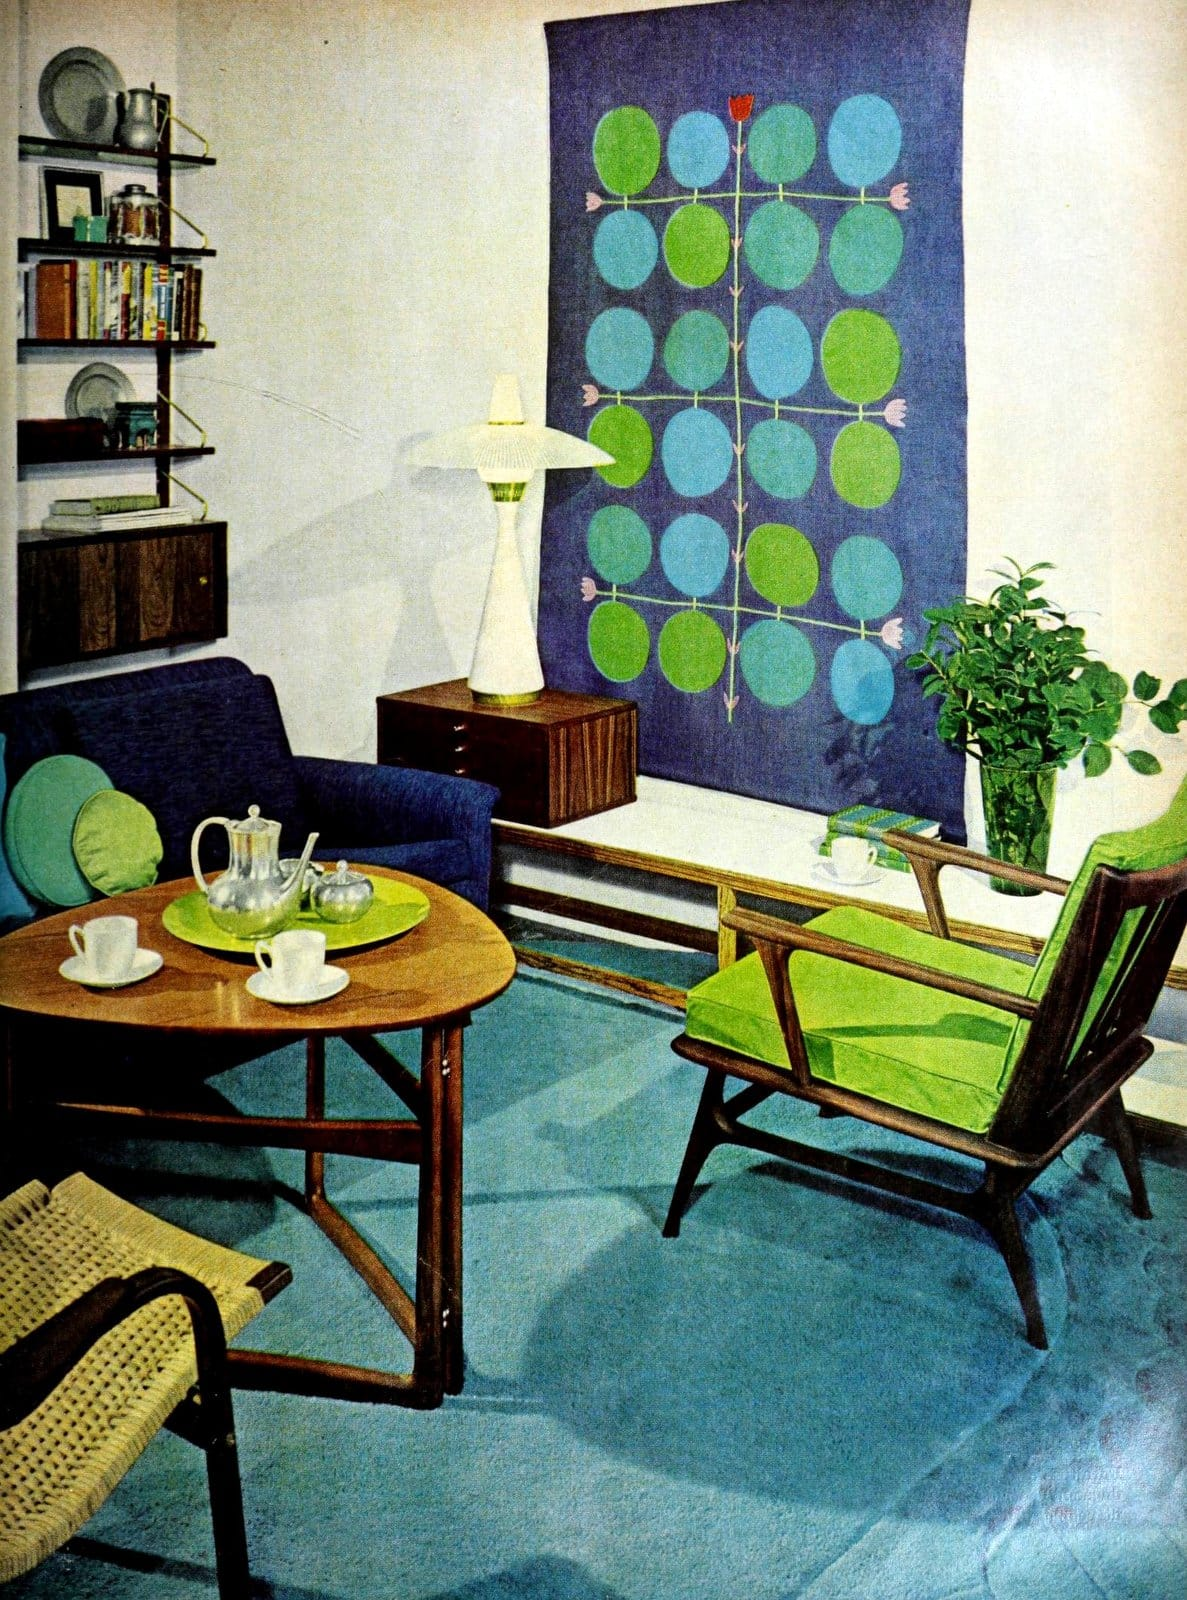 Blue and green midcentury modern living room color scheme (1958)